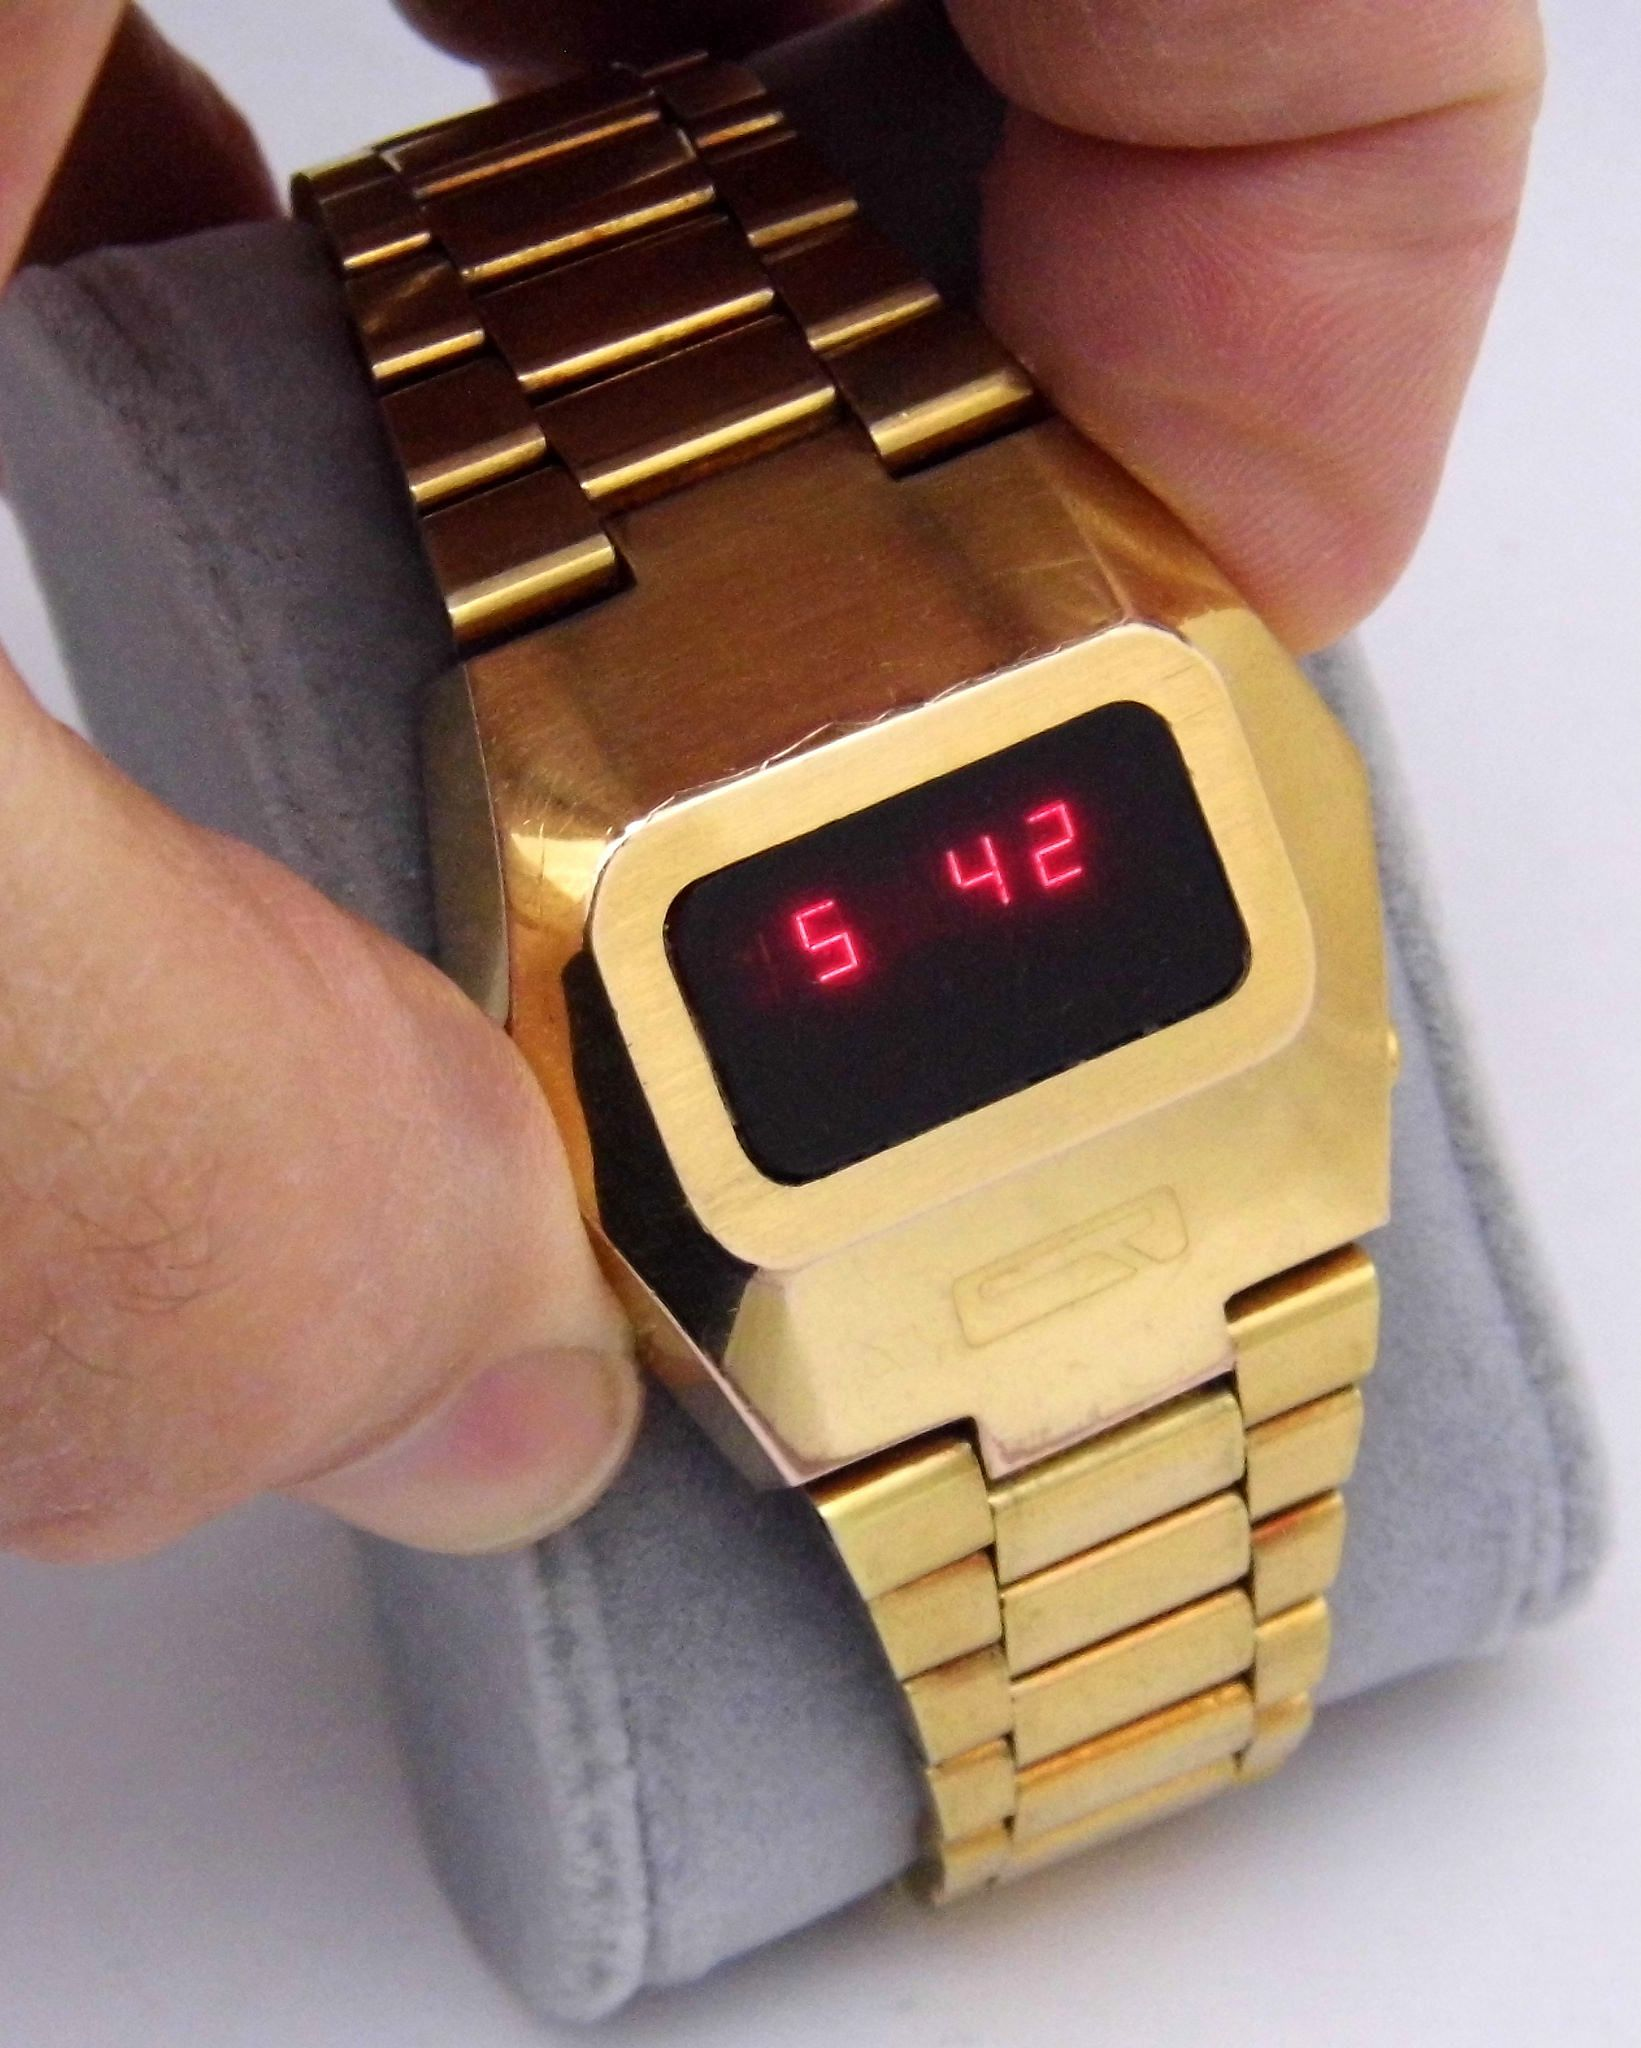 Vintage Quantum Time Corporation Electronic Digital Watch Red Led